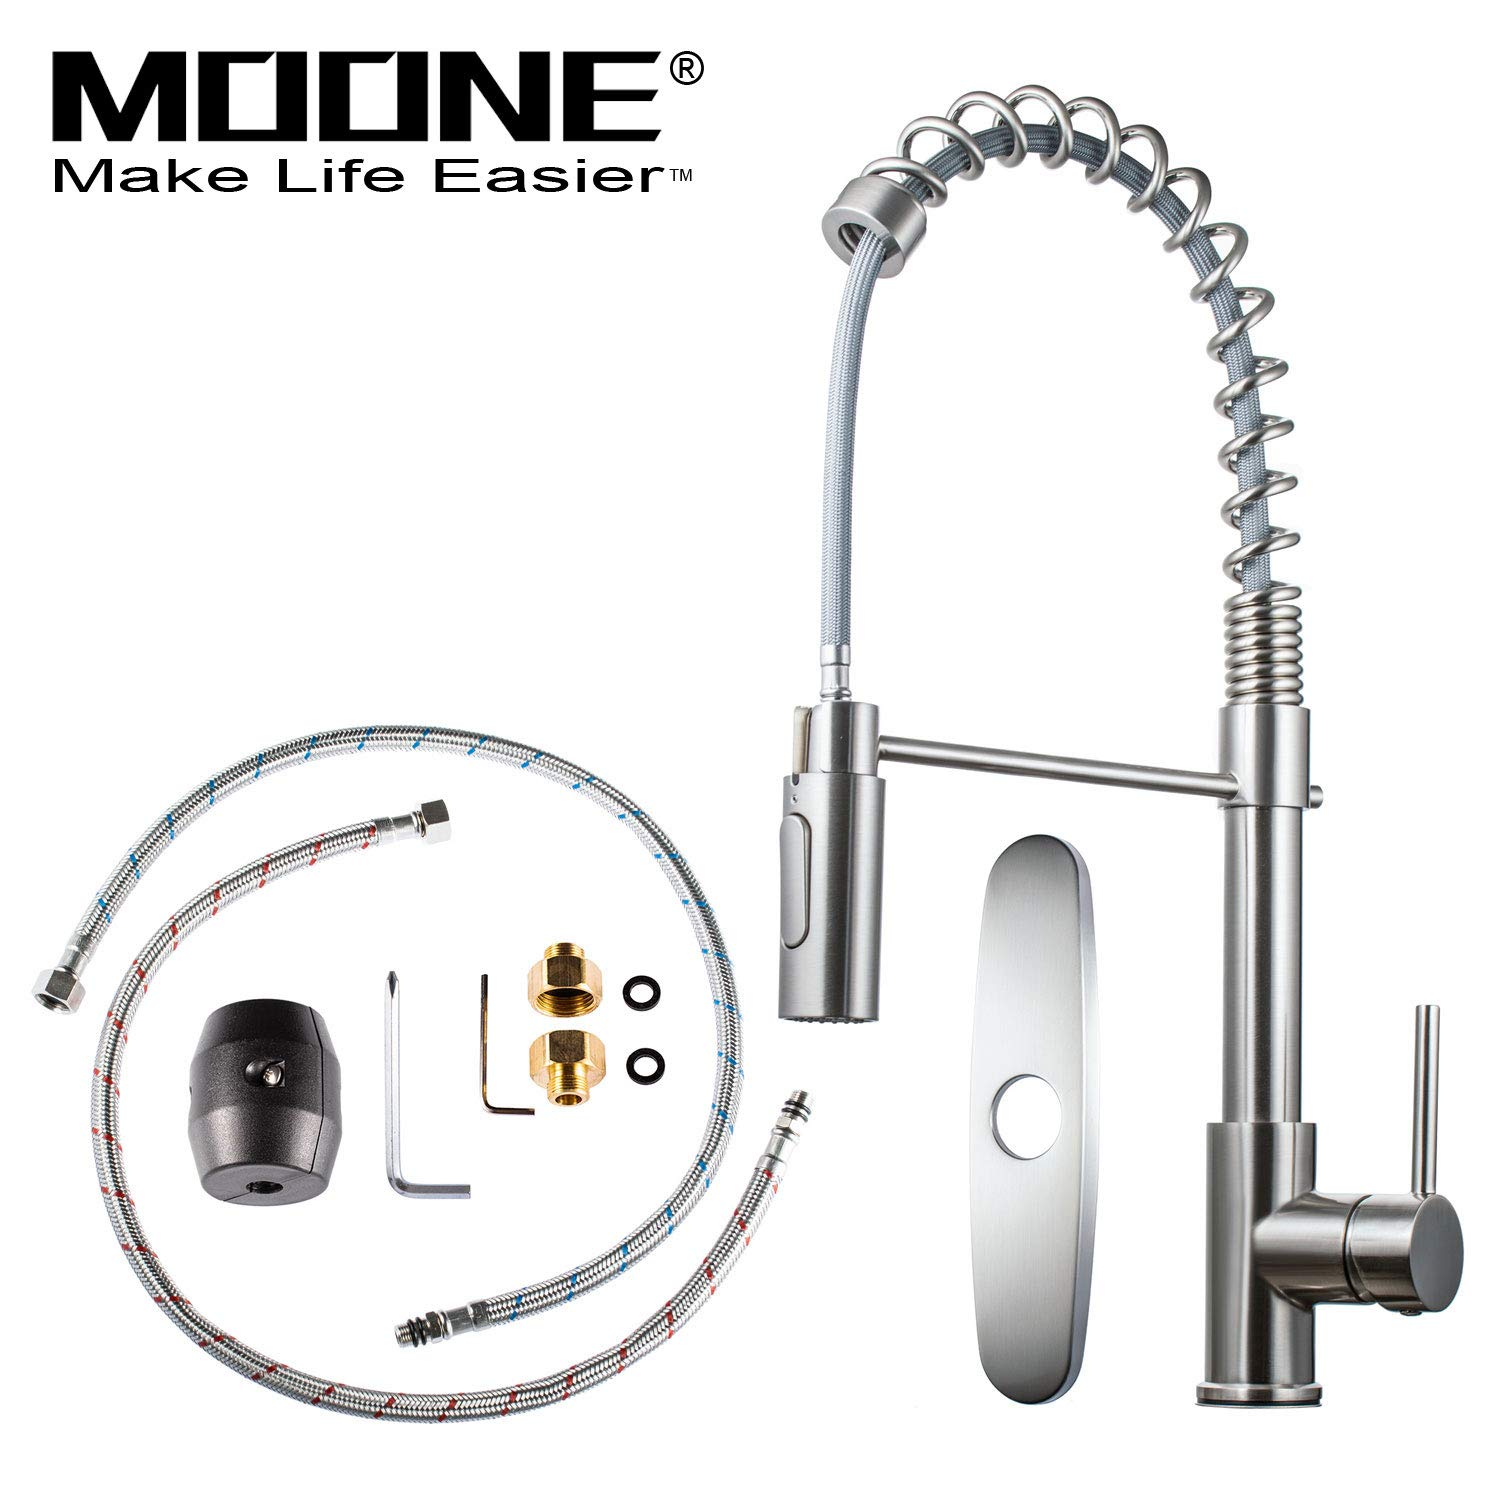 Moone Commercial Modern Single Handle Spring High Arc Brushed Nickel Kitchen Faucet, Pull Out Sprayer Kitchen Faucets Pull Down Spray Brass and Stainless Steel Kitchen Sink Faucet with Deck Plate by Moone (Image #2)